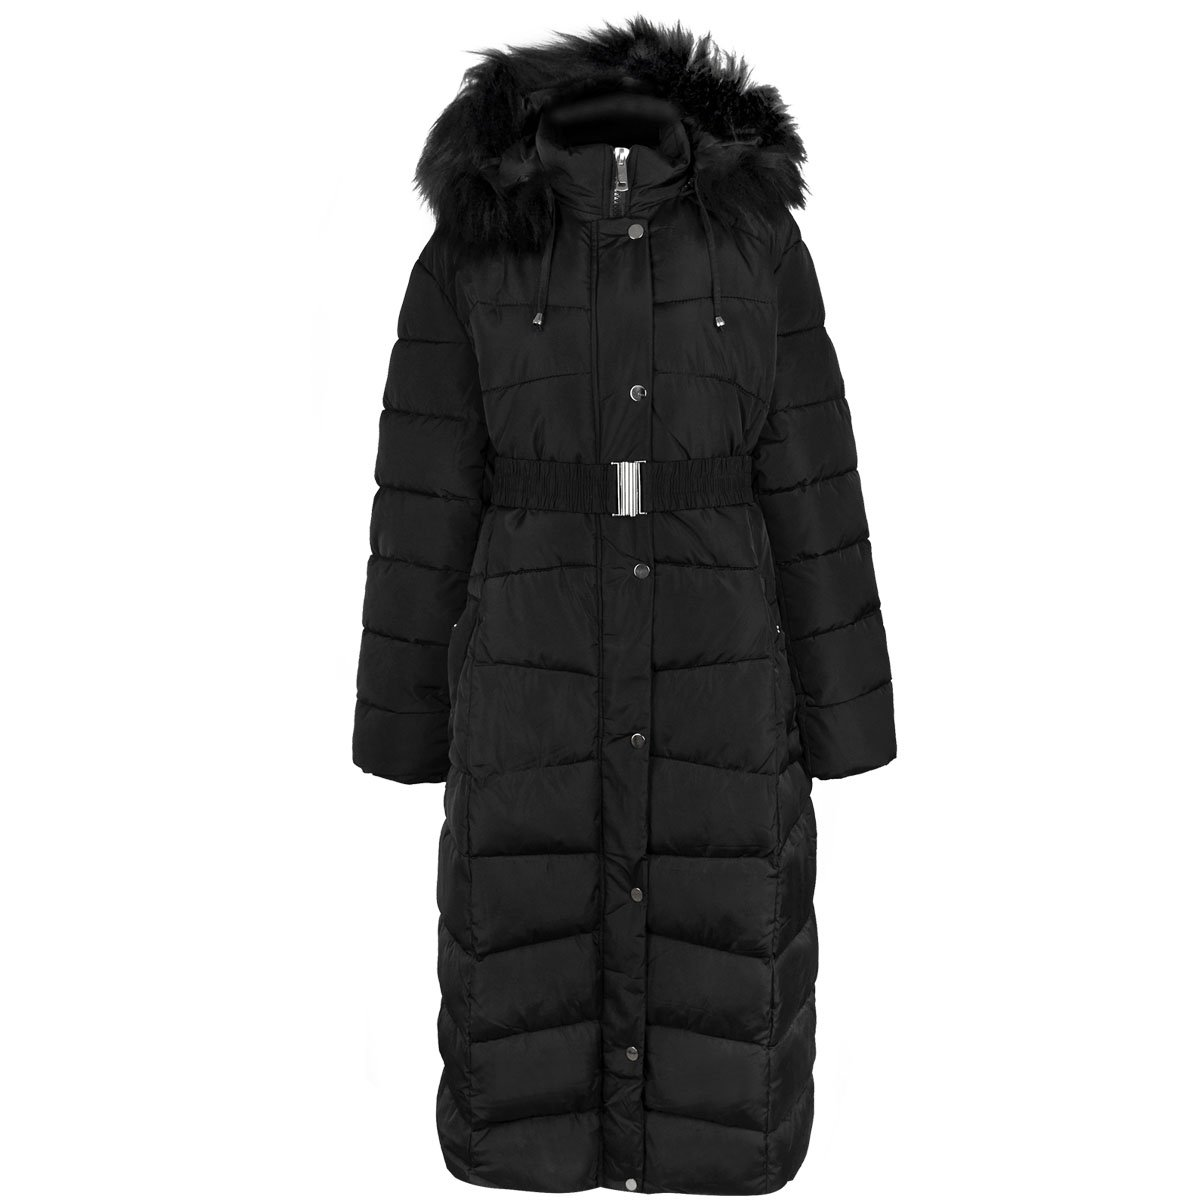 Fashion Thirsty New Womens Plus Size Long Quilted Padded Winter Coat Fur Trim Hood (US 16, Black)